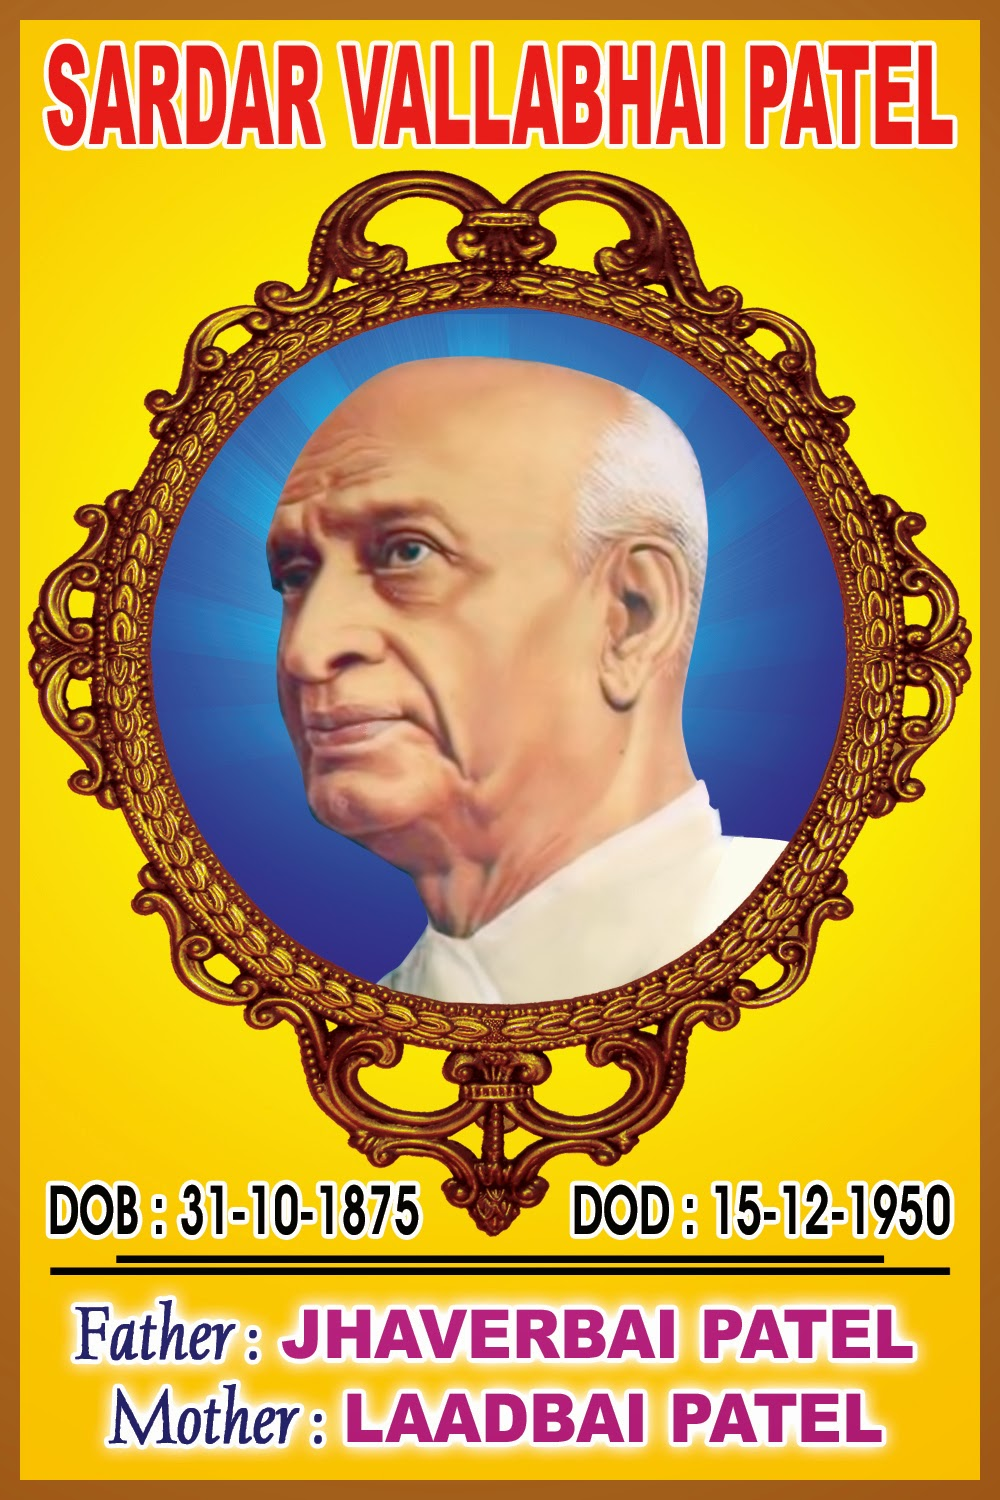 sardar-vallabhai-patel-image-with-names-naveengfx.com